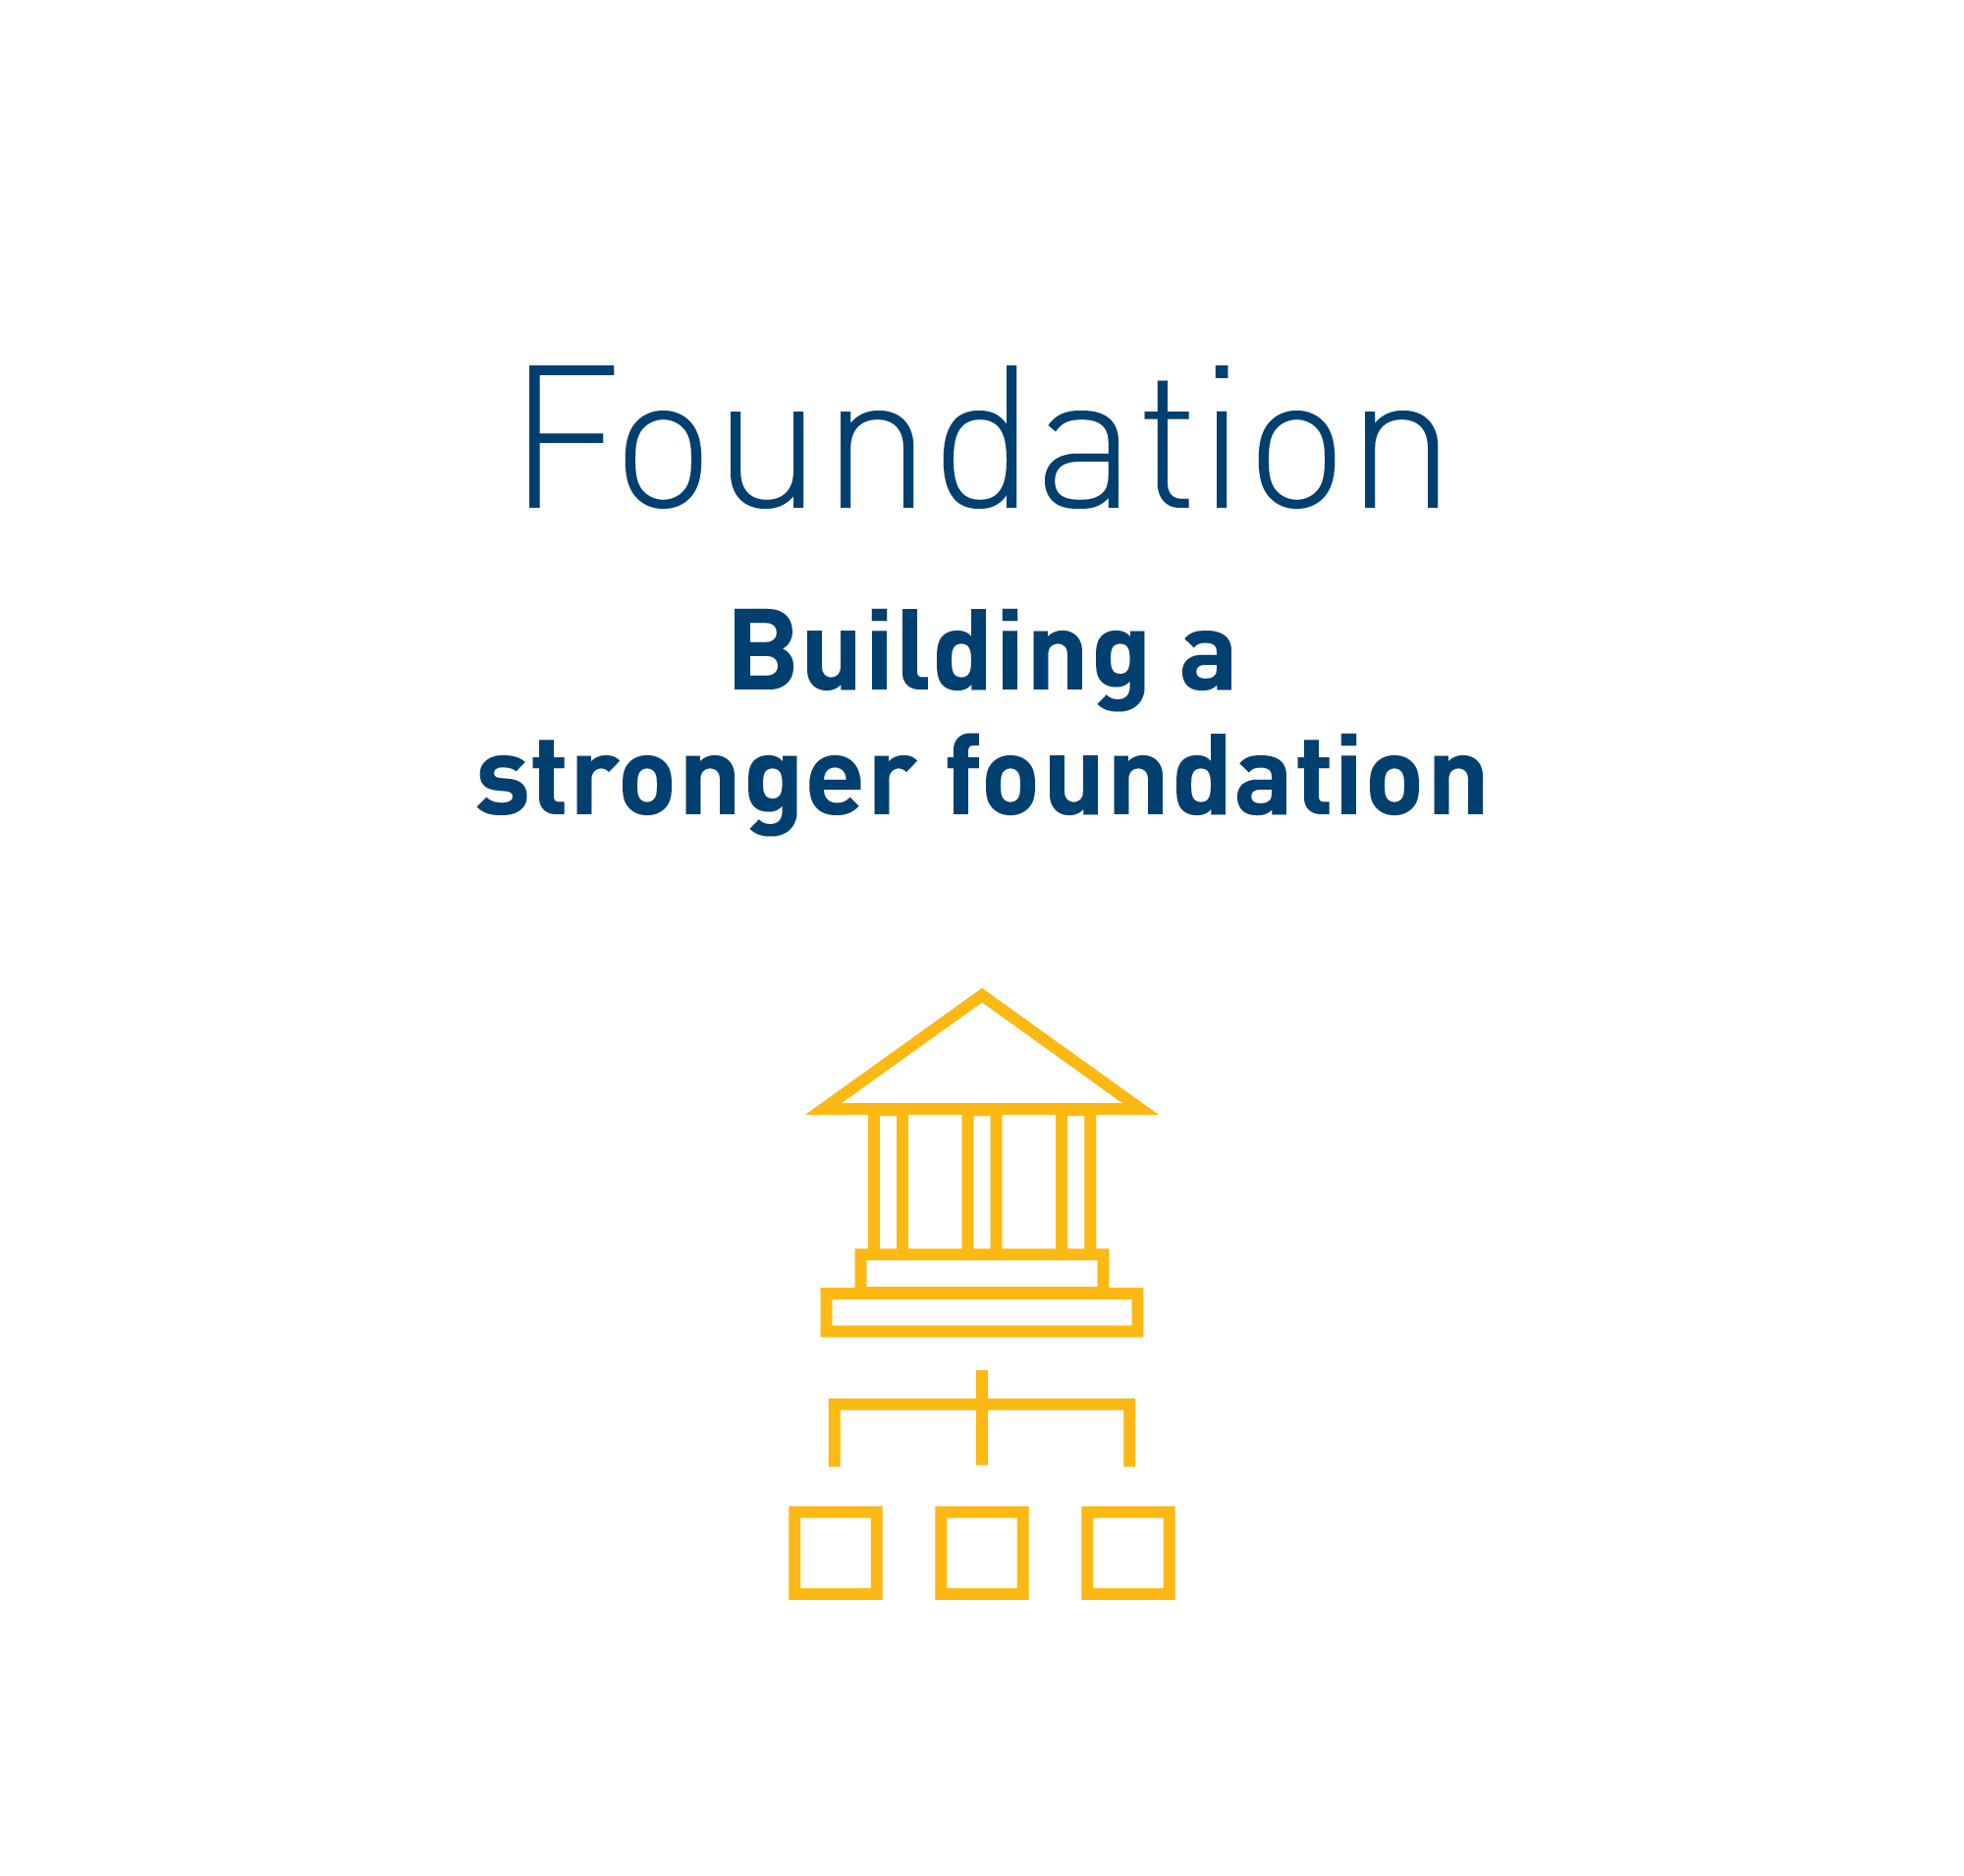 Text in image: Foundation – Building a stronger foundation